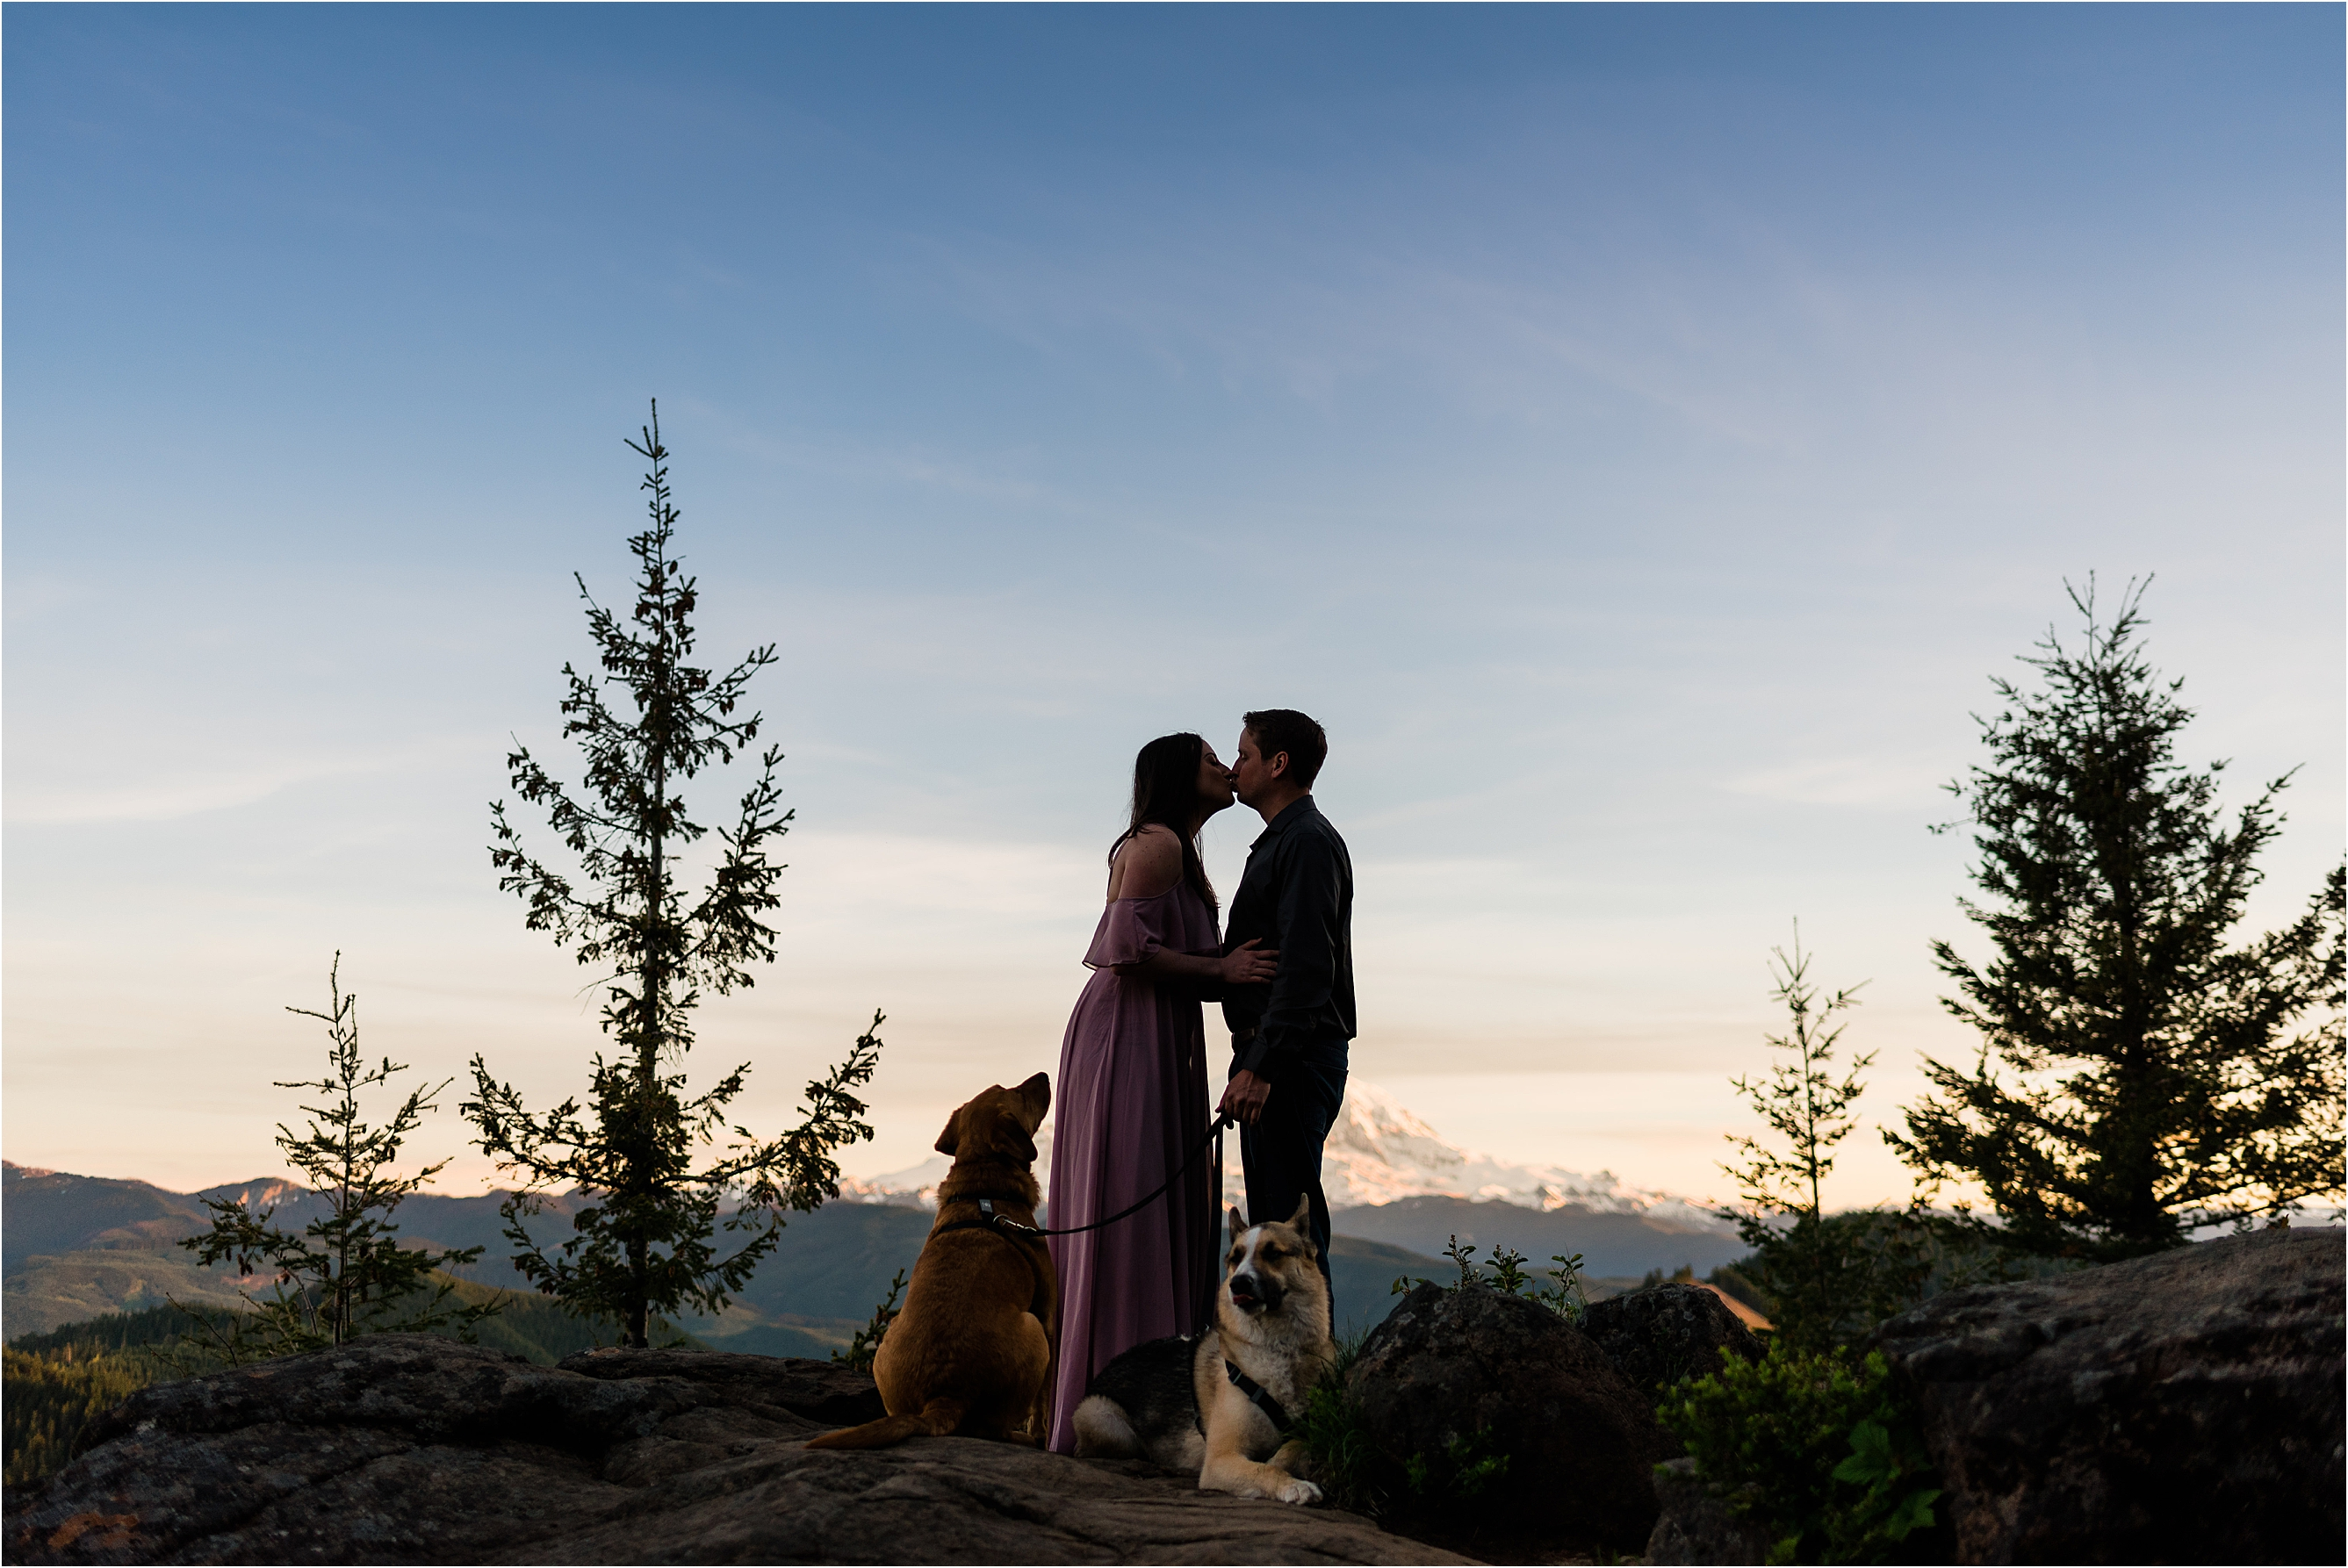 Haley & William and their two dogs. Adventure engagement session at a fire lookout with views of Mt Rainier. Image by Forthright Photo, Seattle Wedding Photographers.